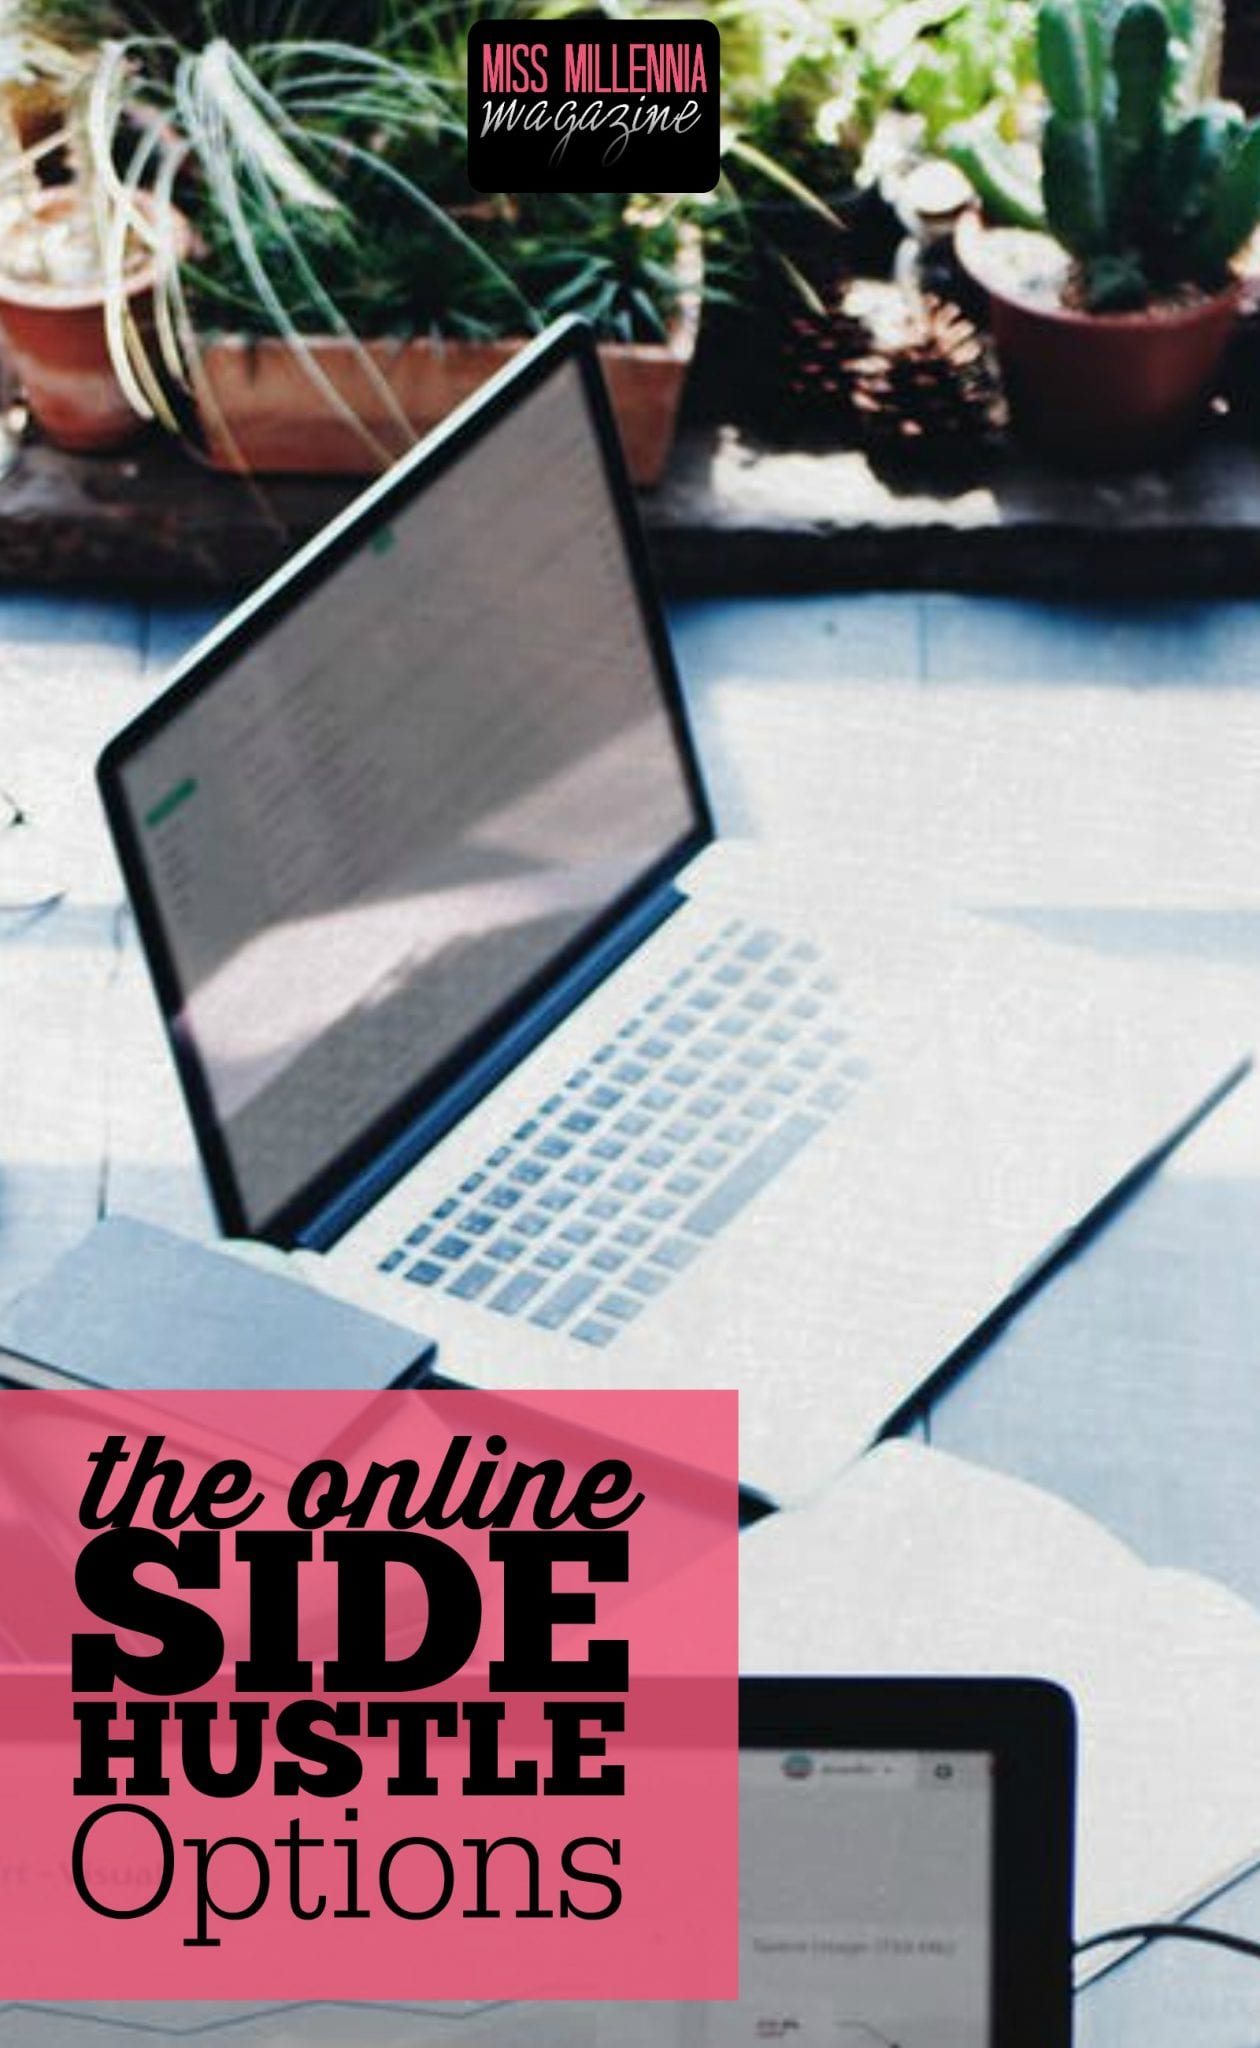 Depending on how much time and effort you want to put into your side hustle, there are always online options out there to help you.